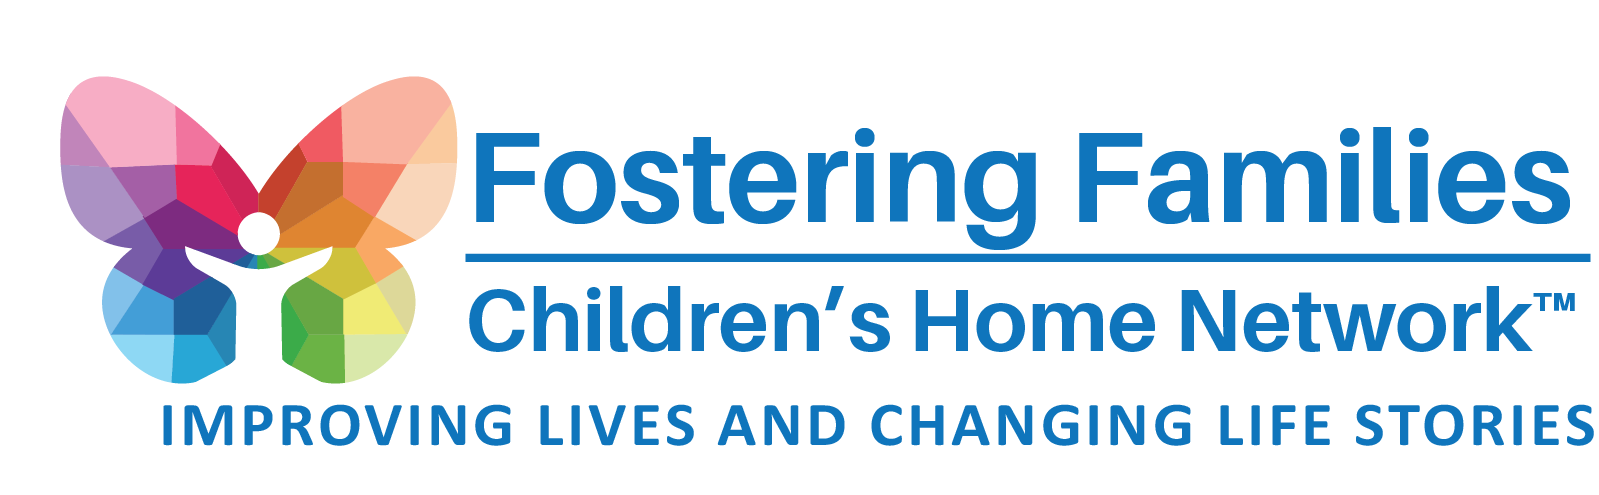 Fostering Families